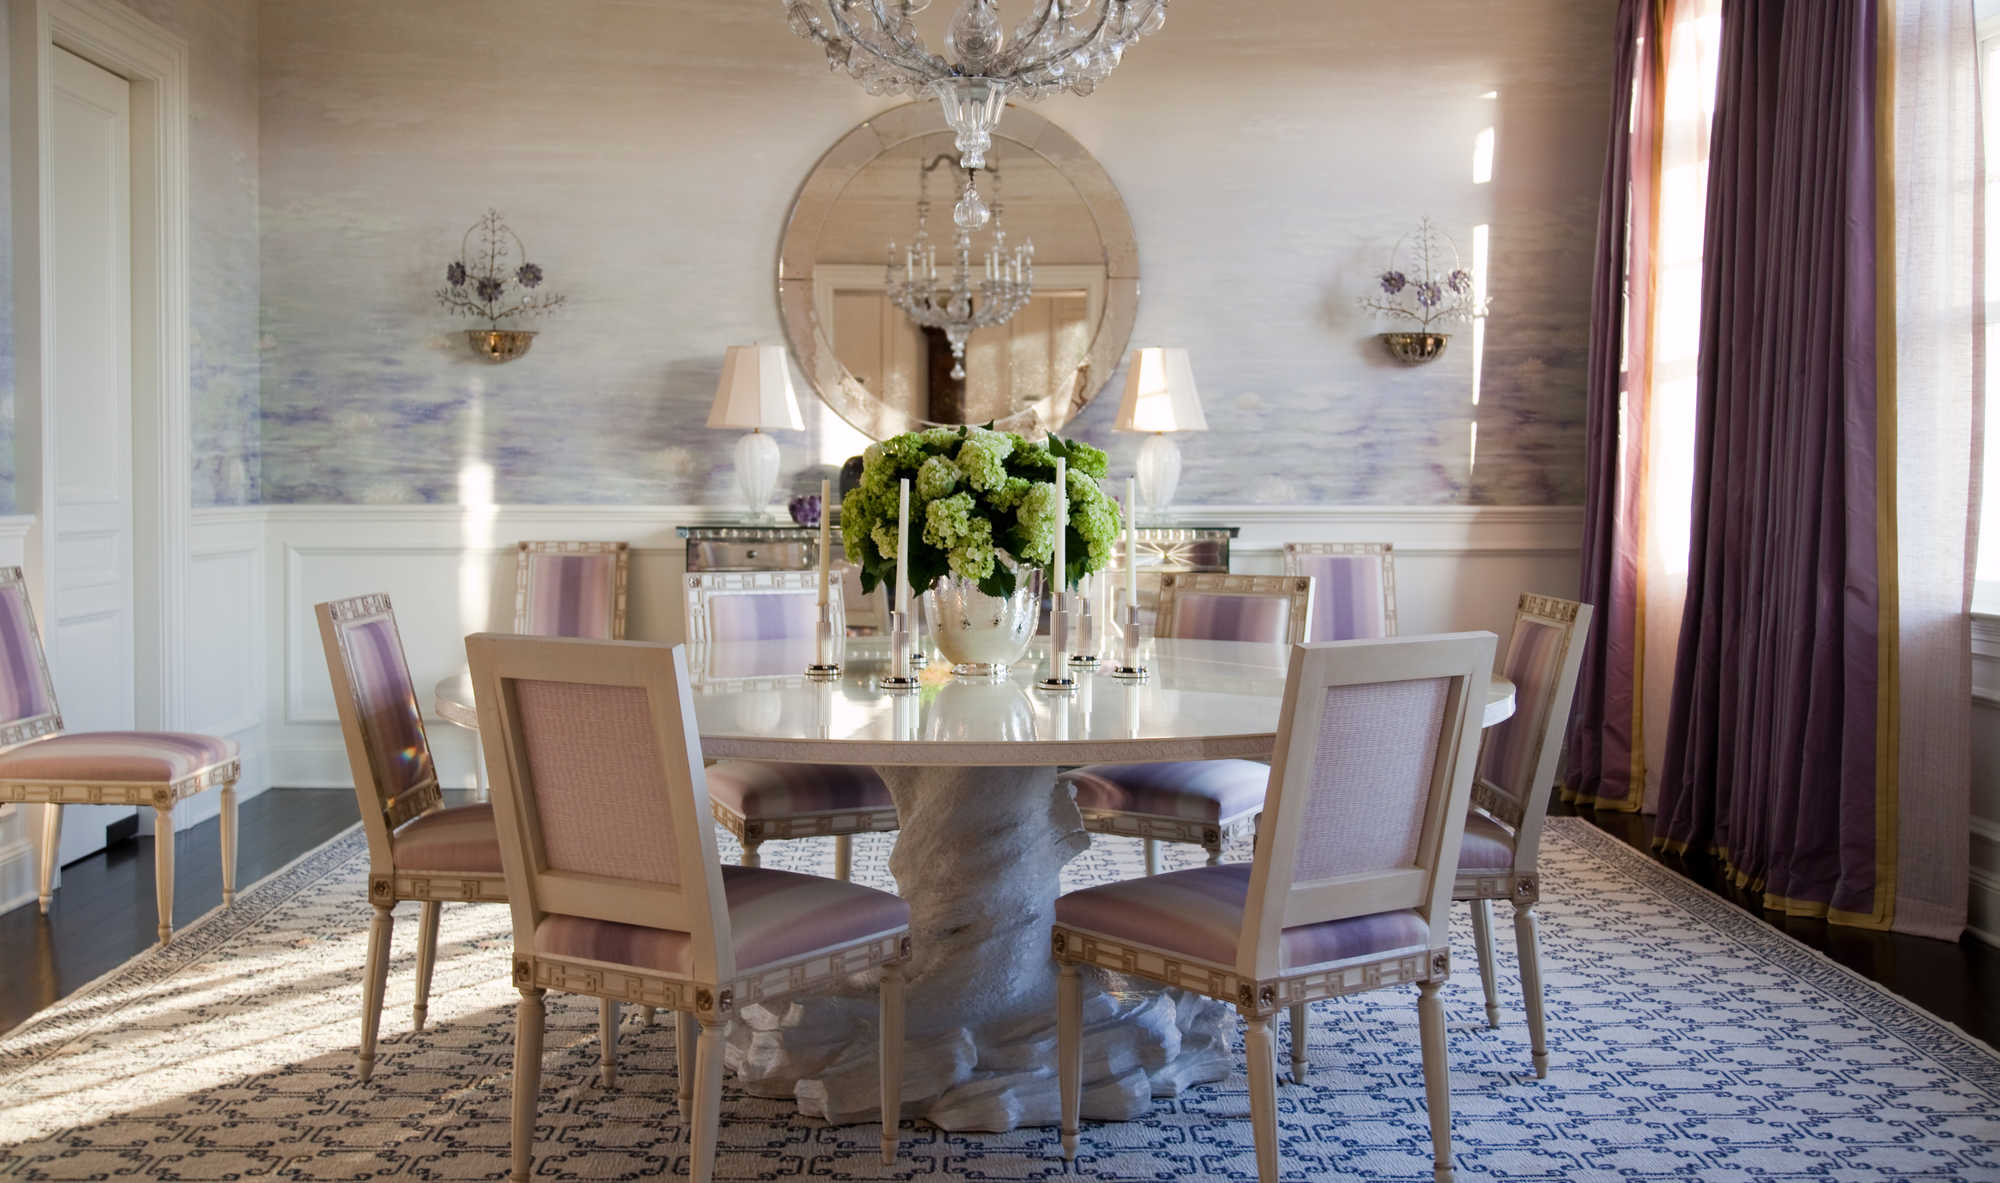 Asmara designer rugs interview with Brian J. McCarthy - Colorful dining room with a geometric blue and cream rug.